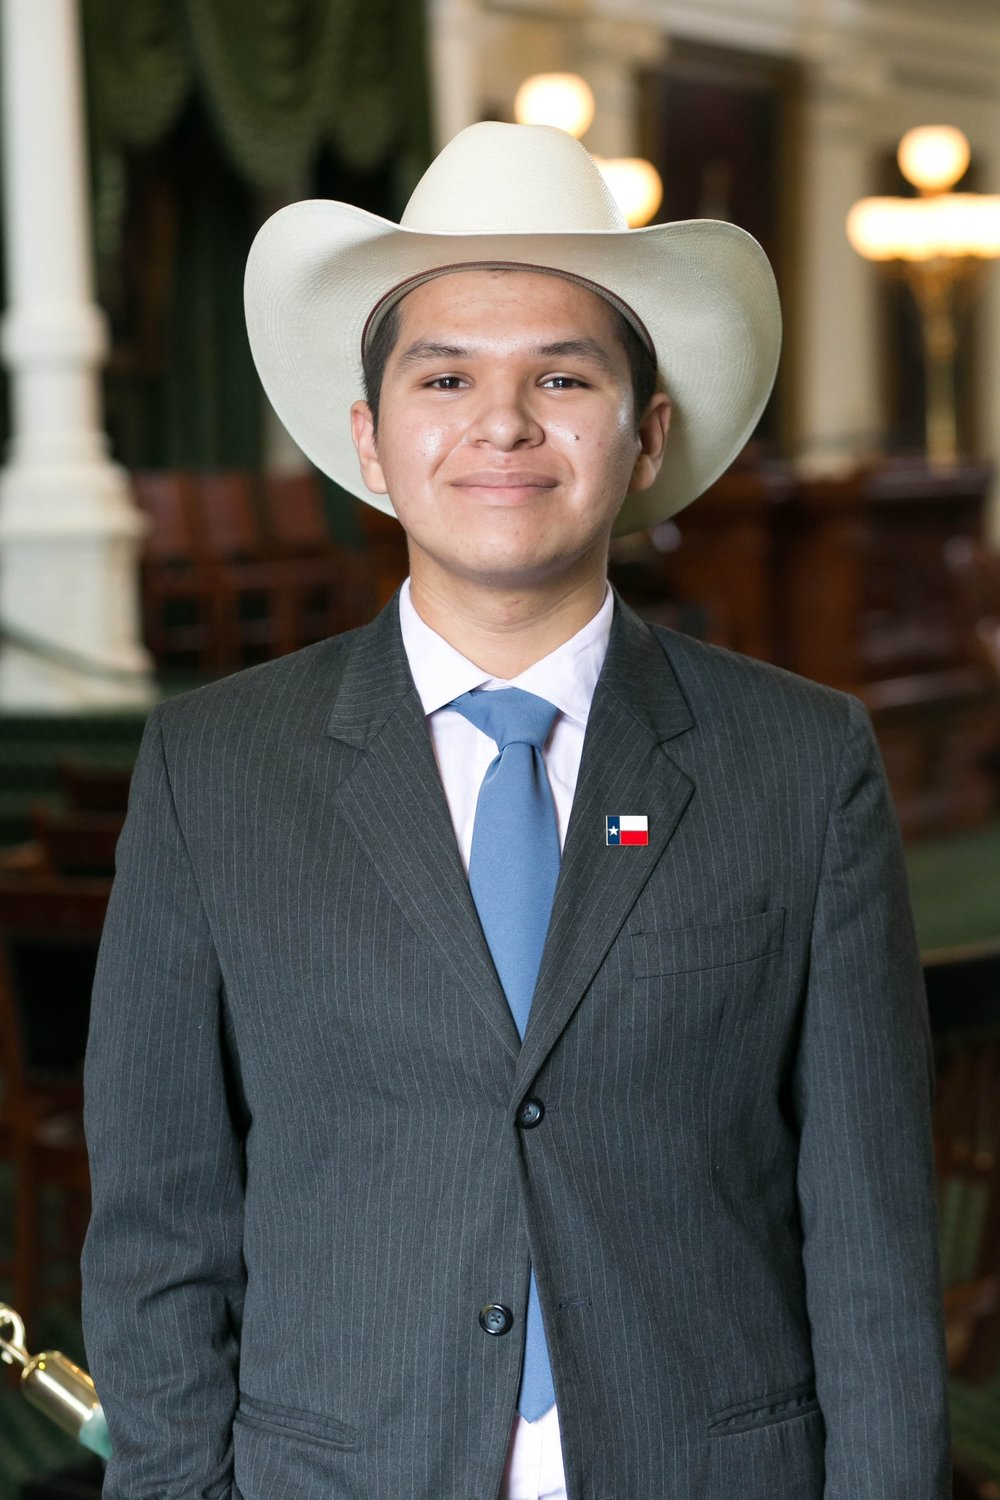 Jorge Villarreal, Policy Staff   Jorge Villarreal is an Agricultural Communications major at Texas Tech University. In May 2016, at age 18, he was selected as an At-Large Alternate Delegate from Texas to the Republican National Convention. He was named Houston Young Republicans Officer of the Year in 2017.  He has previously worked as the TX 9th Congressional District Chair for Jeb Bush, Field Organizer for State Representative Sarah Davis, Houston Council Member Jack Christie, and served as the East Regional Vice Chair for the Texas Federation of College Republicans and Political Director/Communications Director for the Houston Young Republicans.  Outside of politics and school, you can find him traveling across The South or watching and cheering for the Texas Tech Red Raiders, Texas A&M Football or New Jersey Devils.   @jorgvillarreal